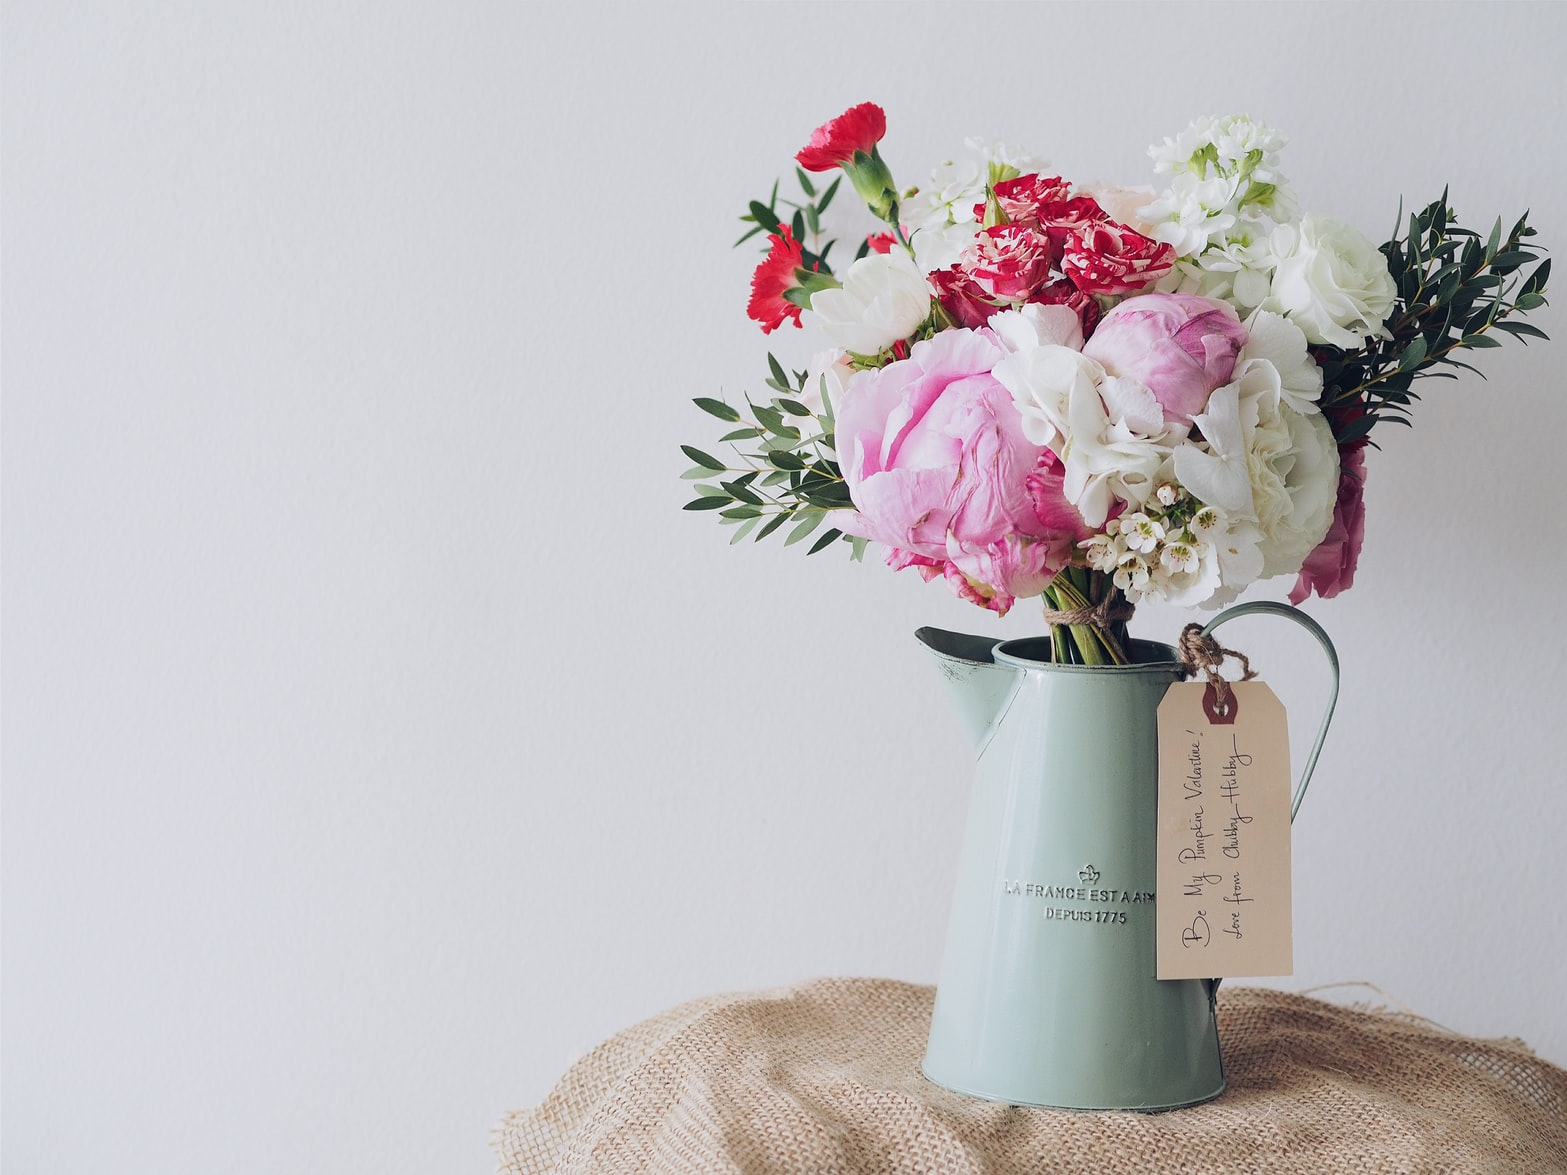 5 Mindful Mother's Day Gift Ideas to Excite the Senses